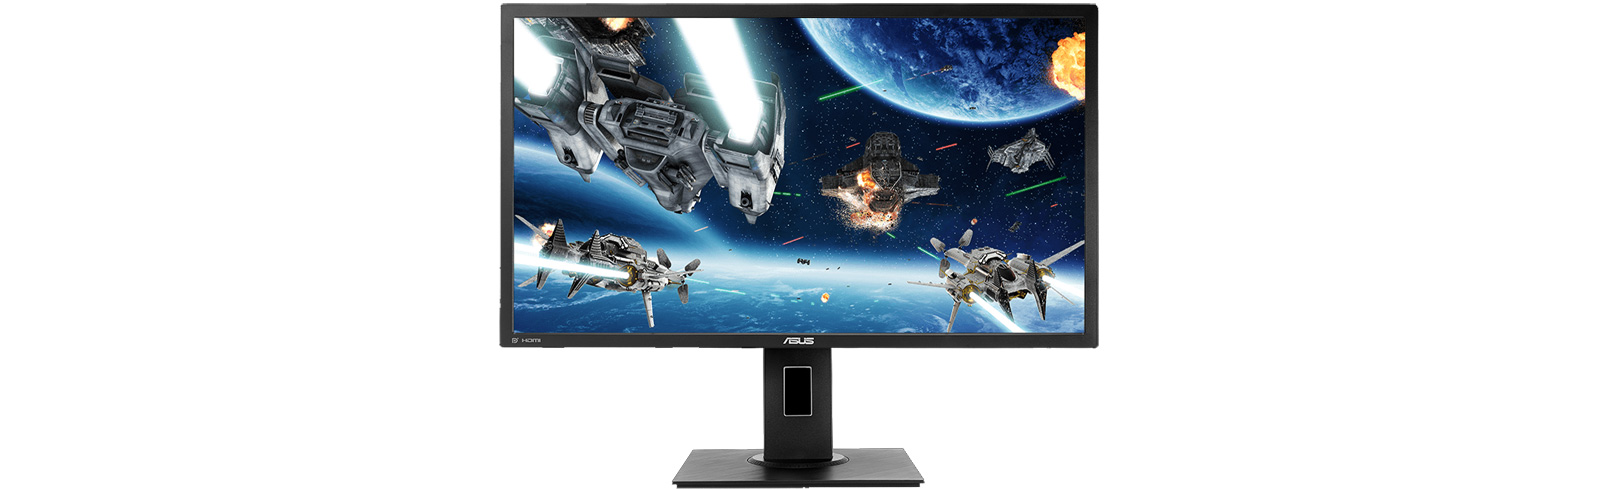 "Asus continues its gaming monitors lineup with the 28"" 4K UHD Asus VP28UQGL"